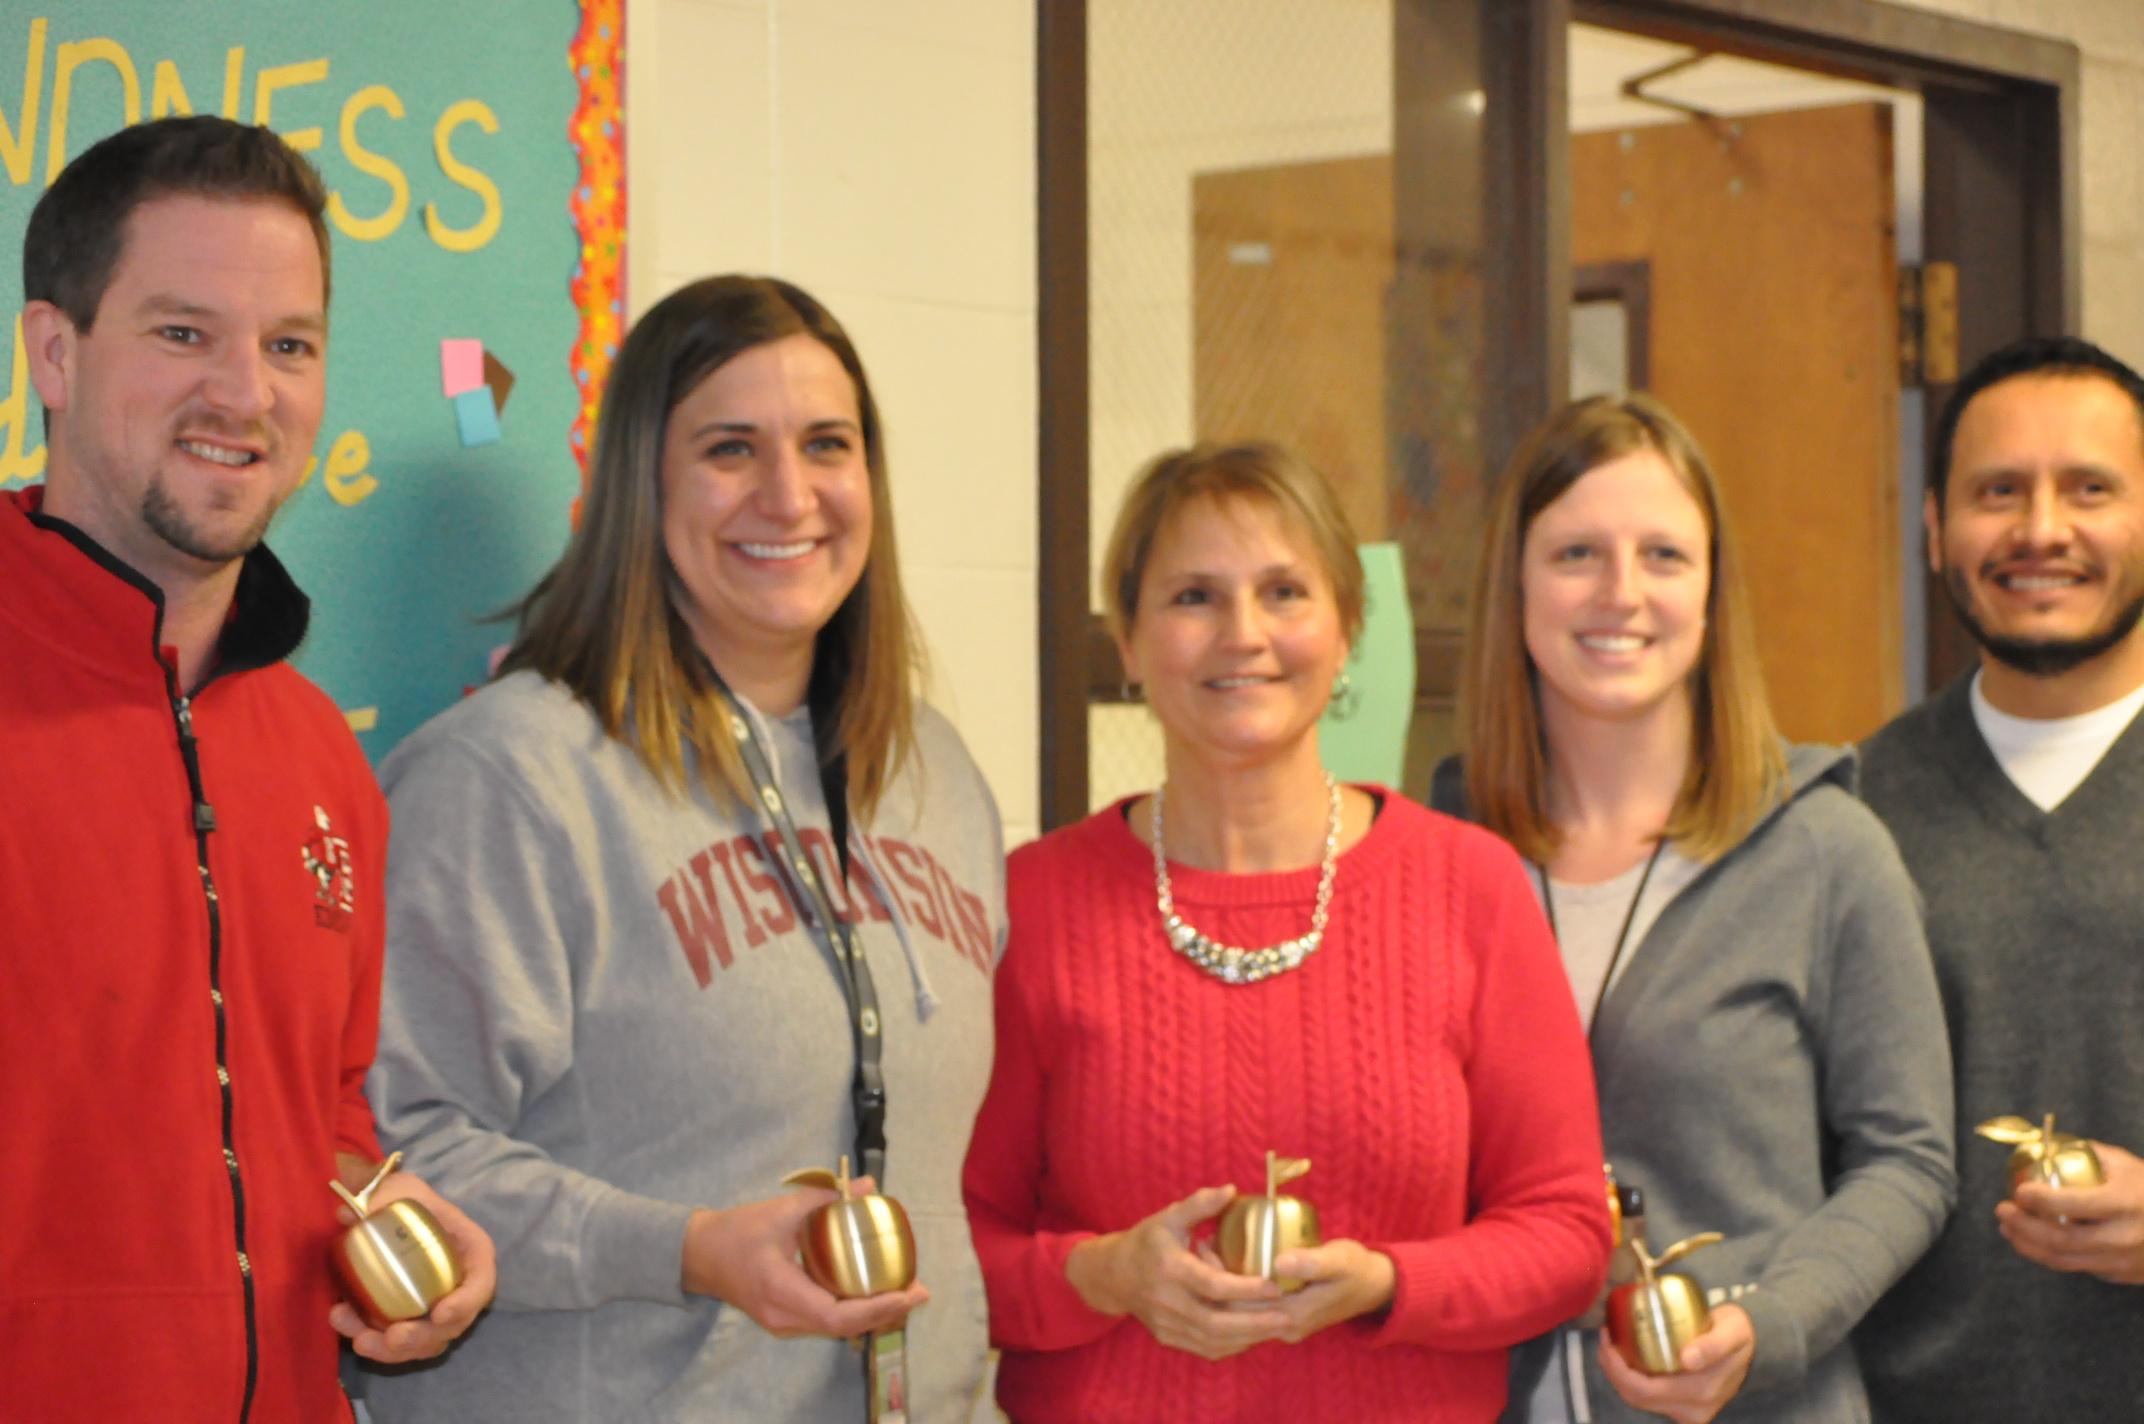 The Edison Middle School 6th grade mathematics team, Jared Barker, Andrea Huggett, Debbie Joski, Holly Snyder and Eduardo Pineda, pose with their Golden Apple Awards Feb. 7, 2018, in Green Bay. (WLUK/Donna Fischer)